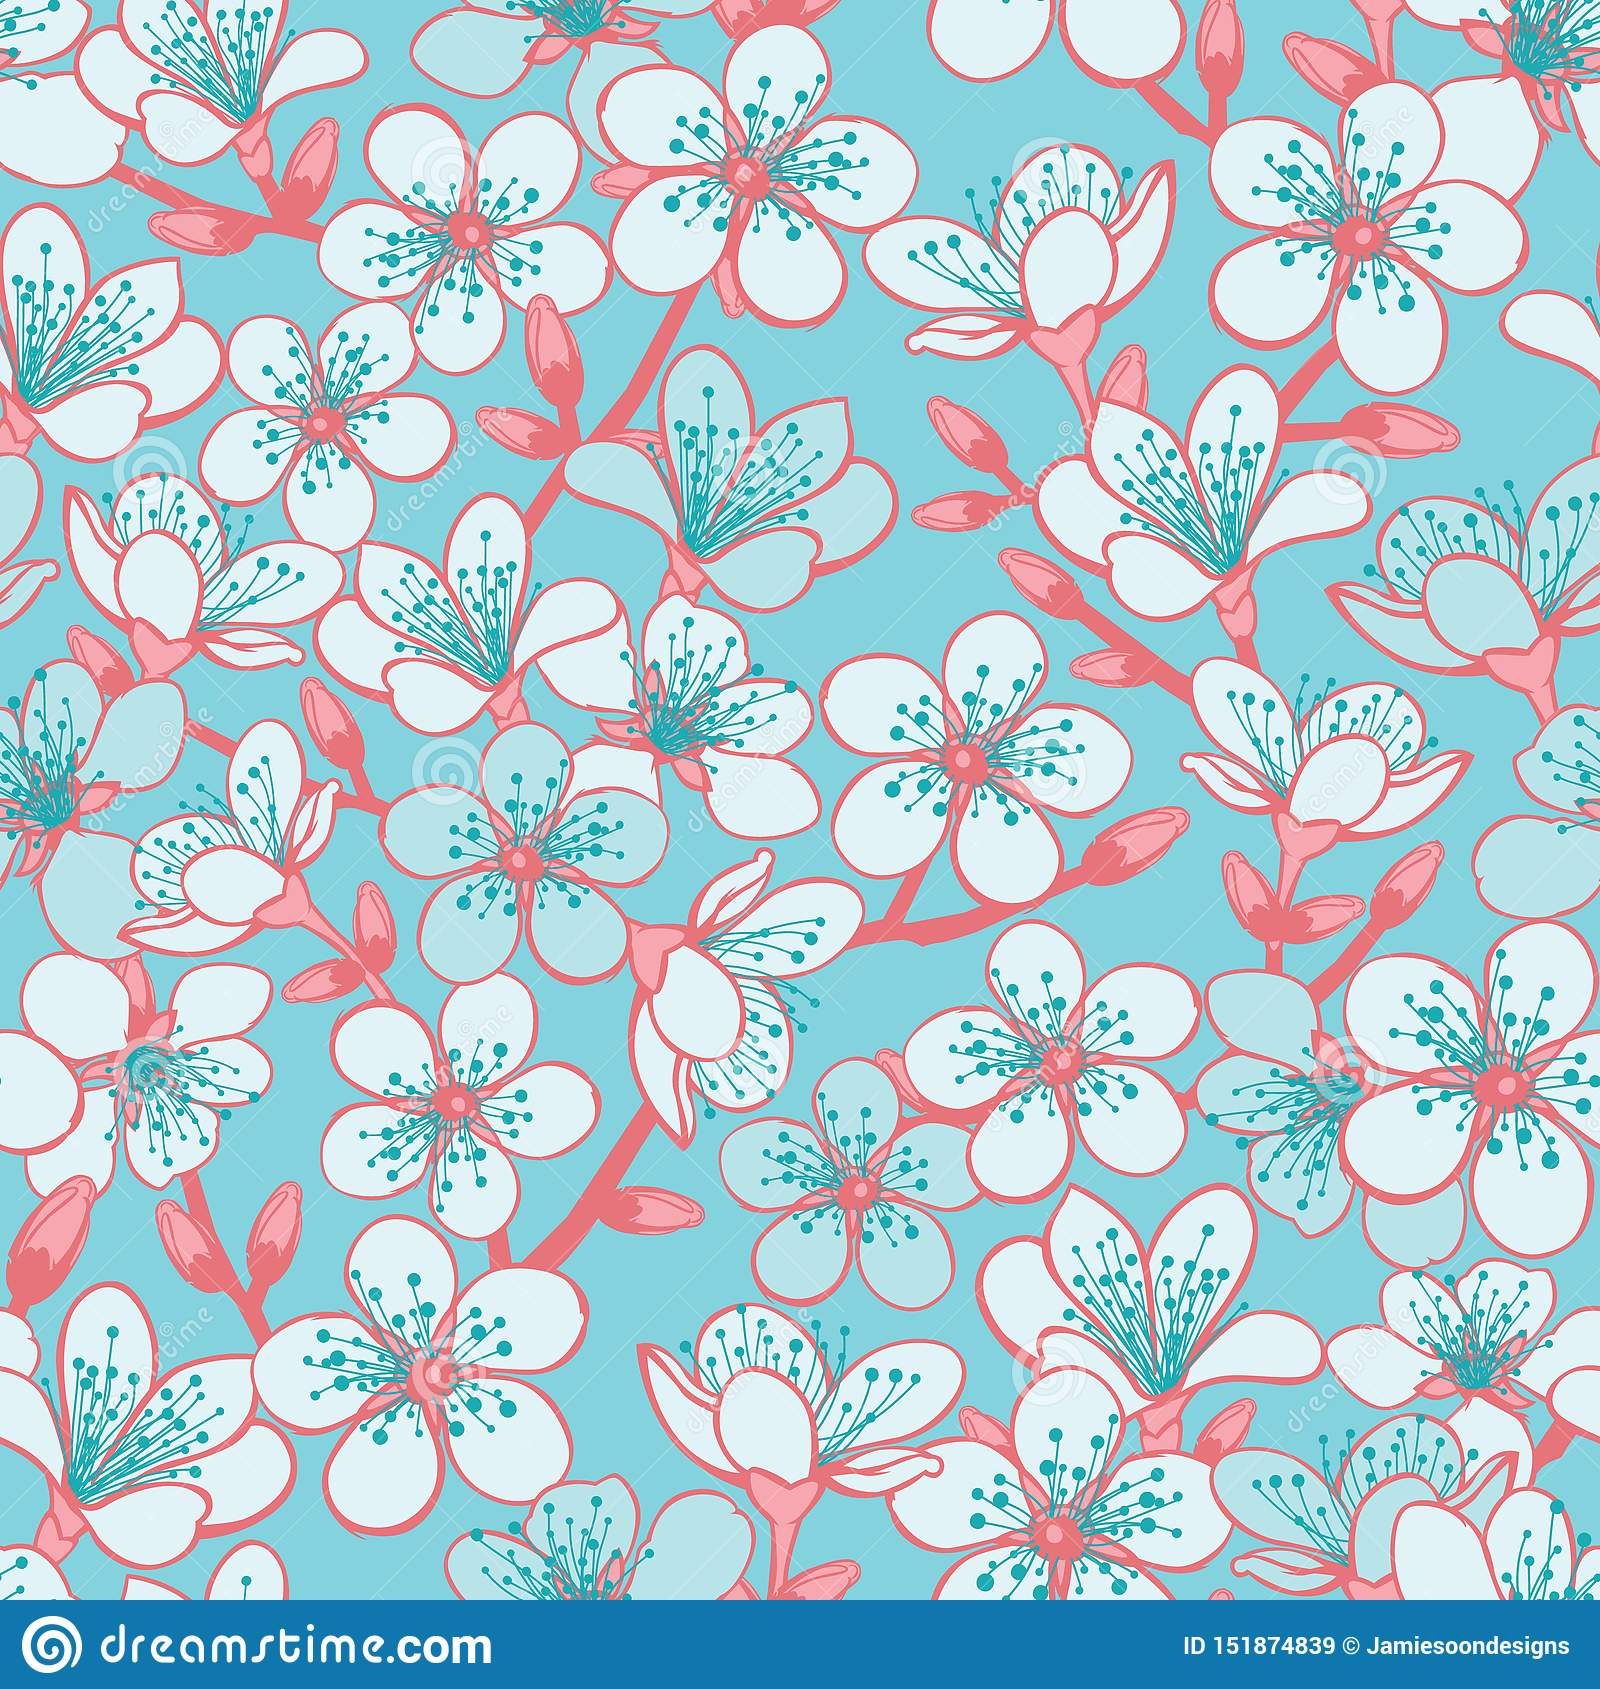 Vector pastel cyan background with light blue cherry blossom sakura flowers and red stems seamless pattern background